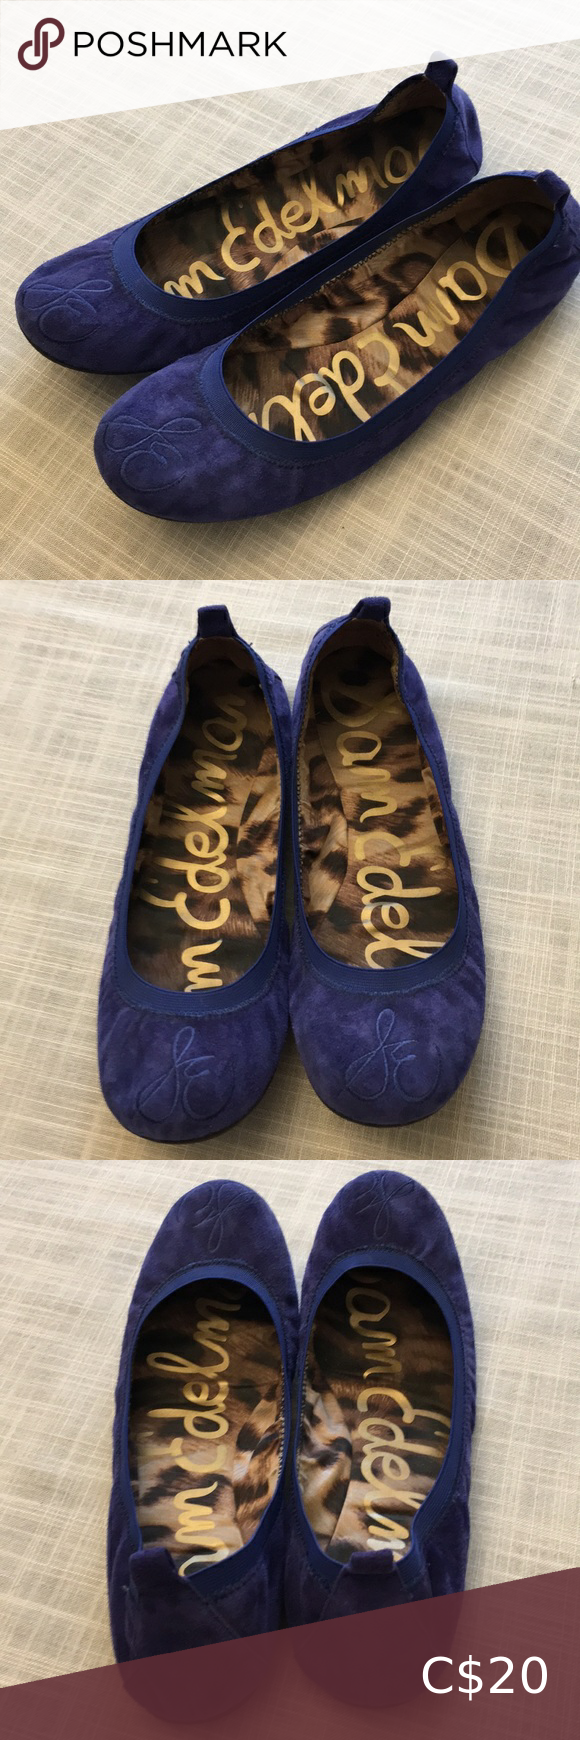 Blue blue blue suede shoes in 2020